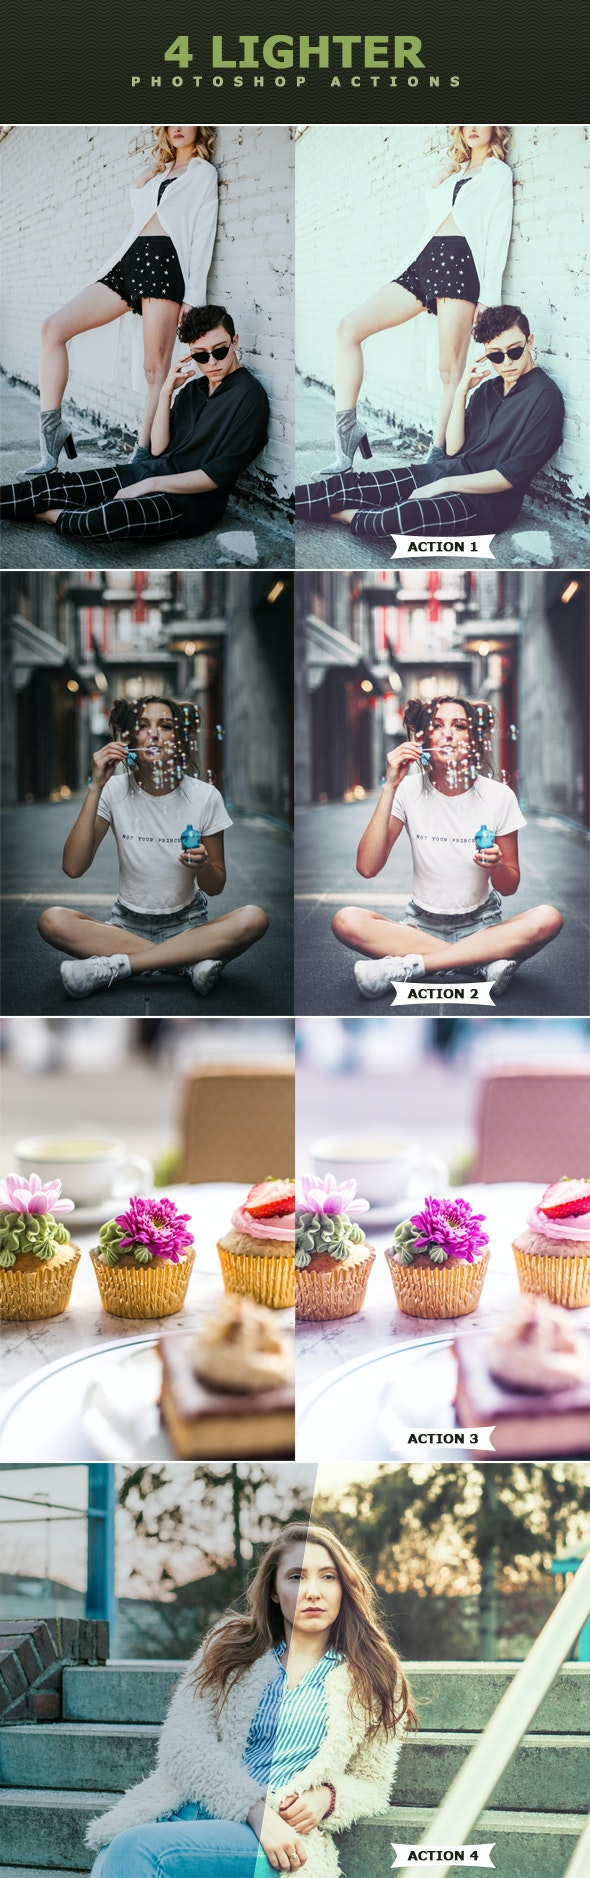 Lighter Photoshop Actions - Photo Effects Actions